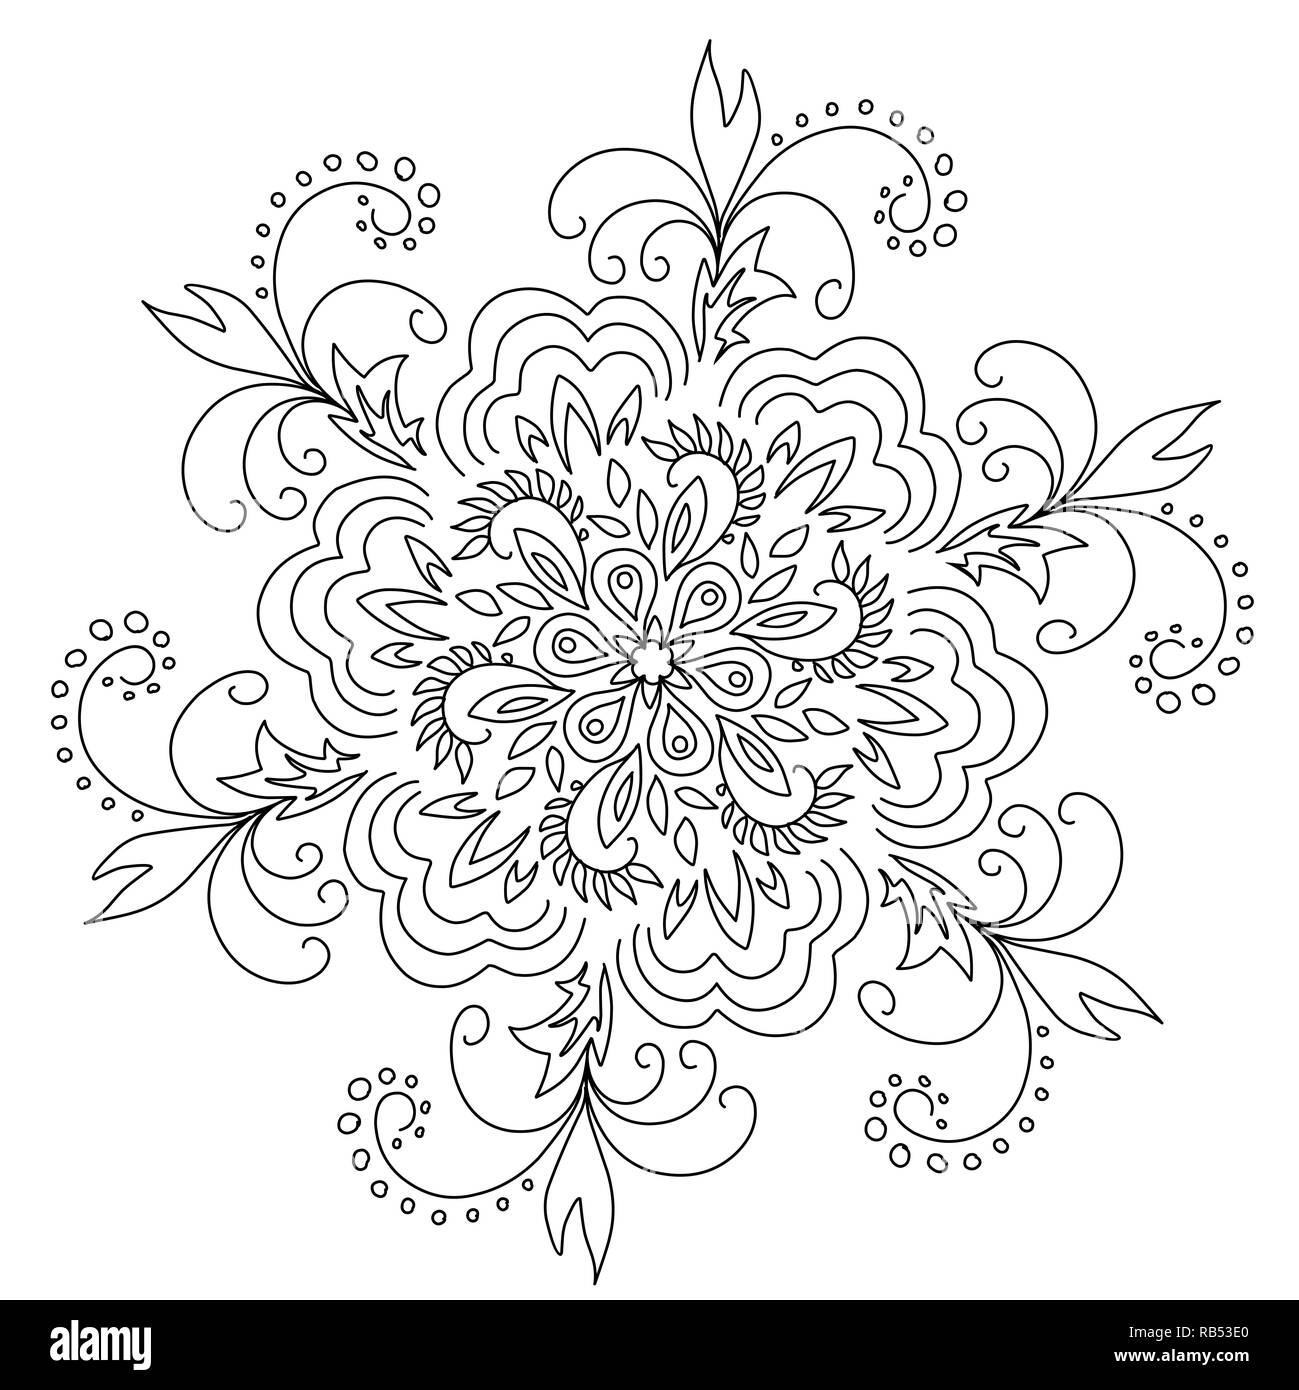 Stock Illustration Black and White Pattern on a White Background - Stock Image